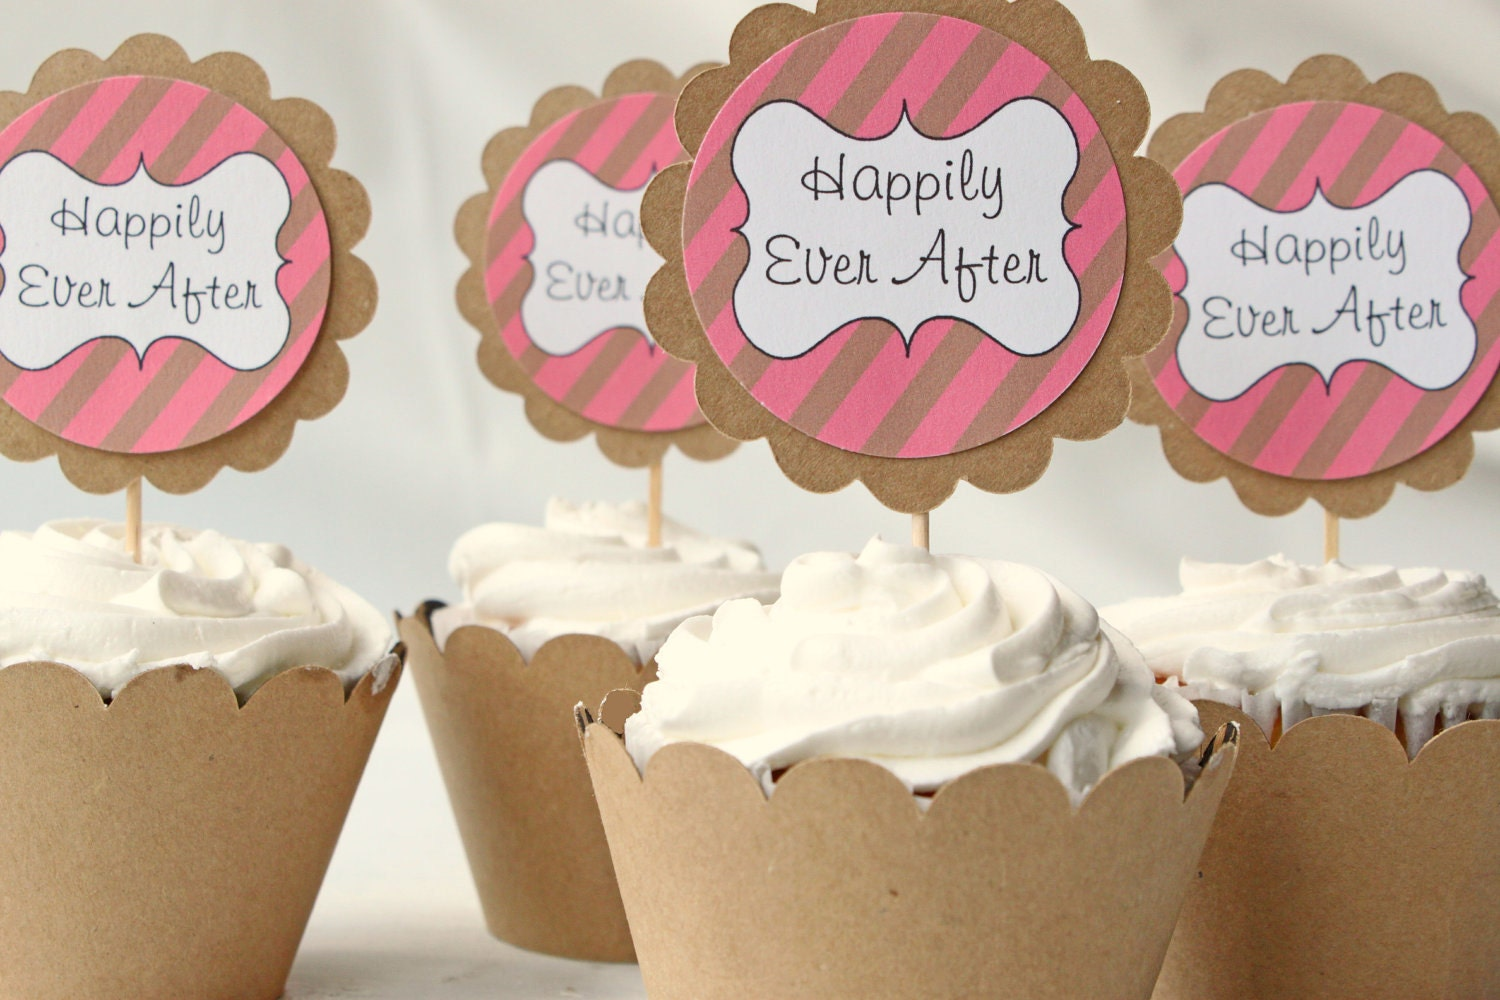 Wedding Cake Toppers! on Pinterest 62 Pins